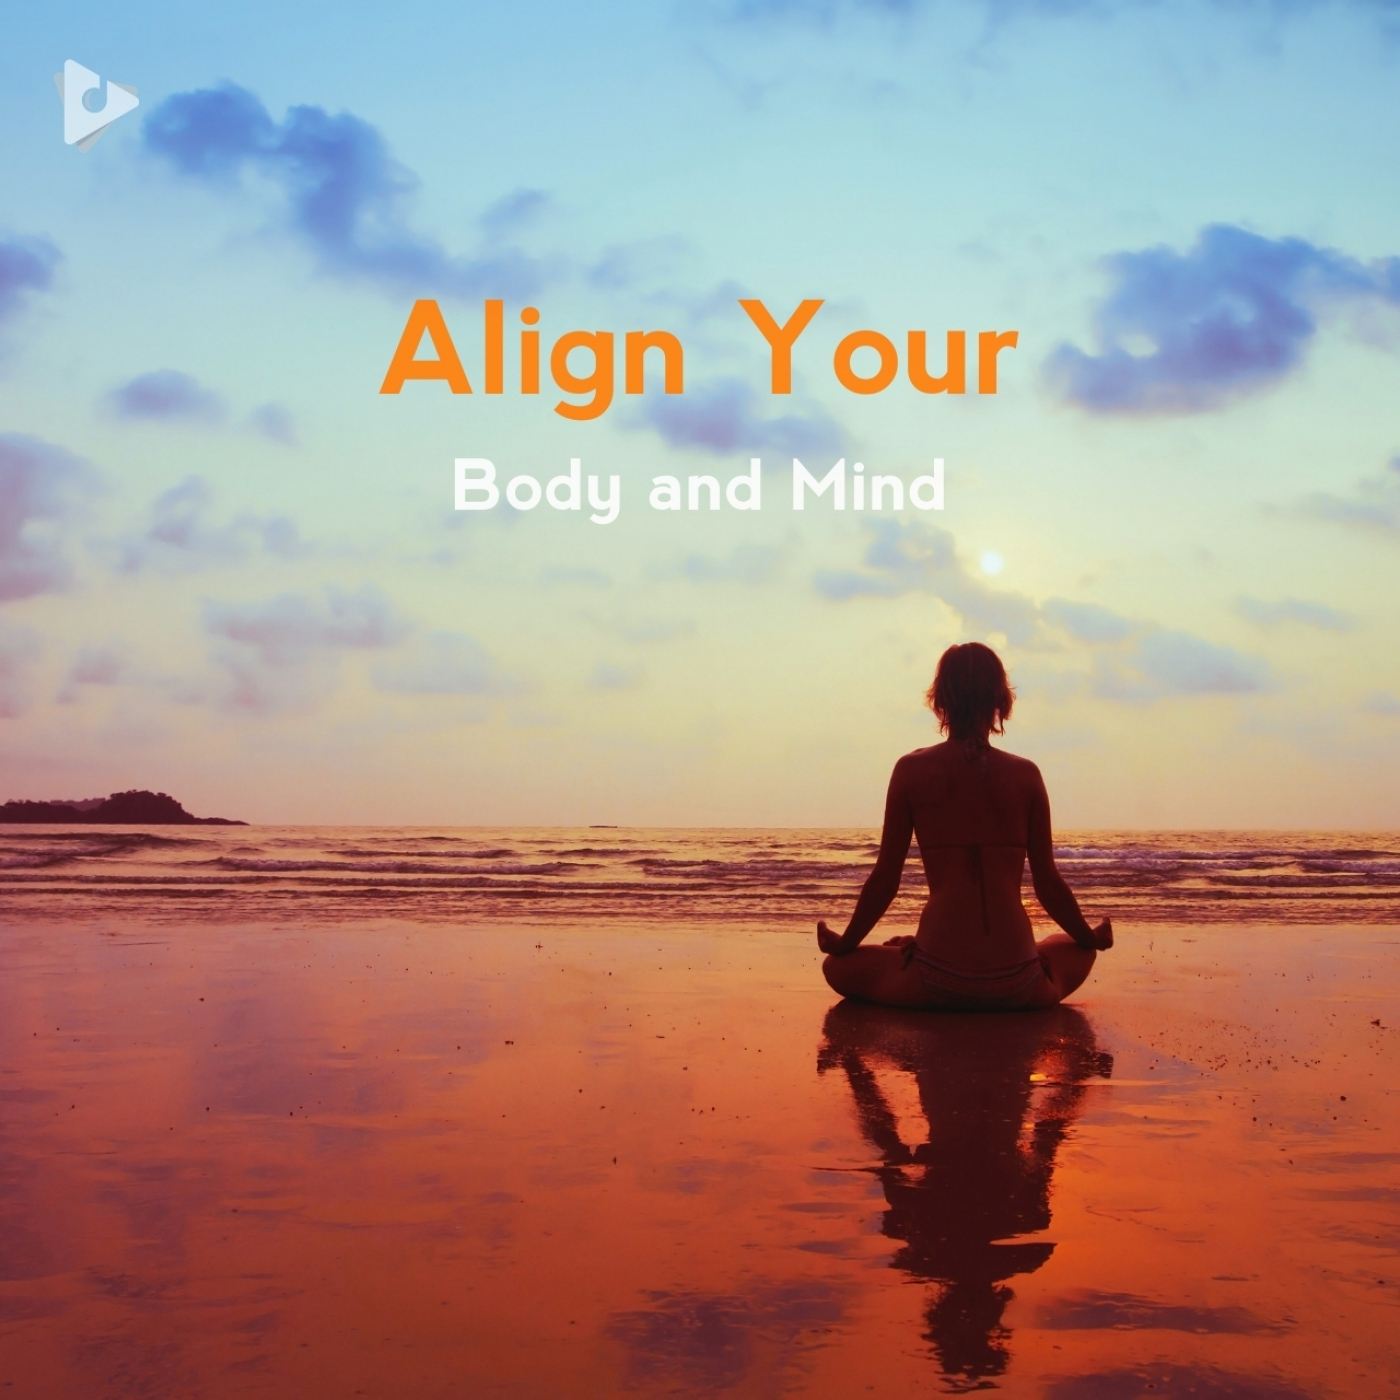 Align Your Body and Mind